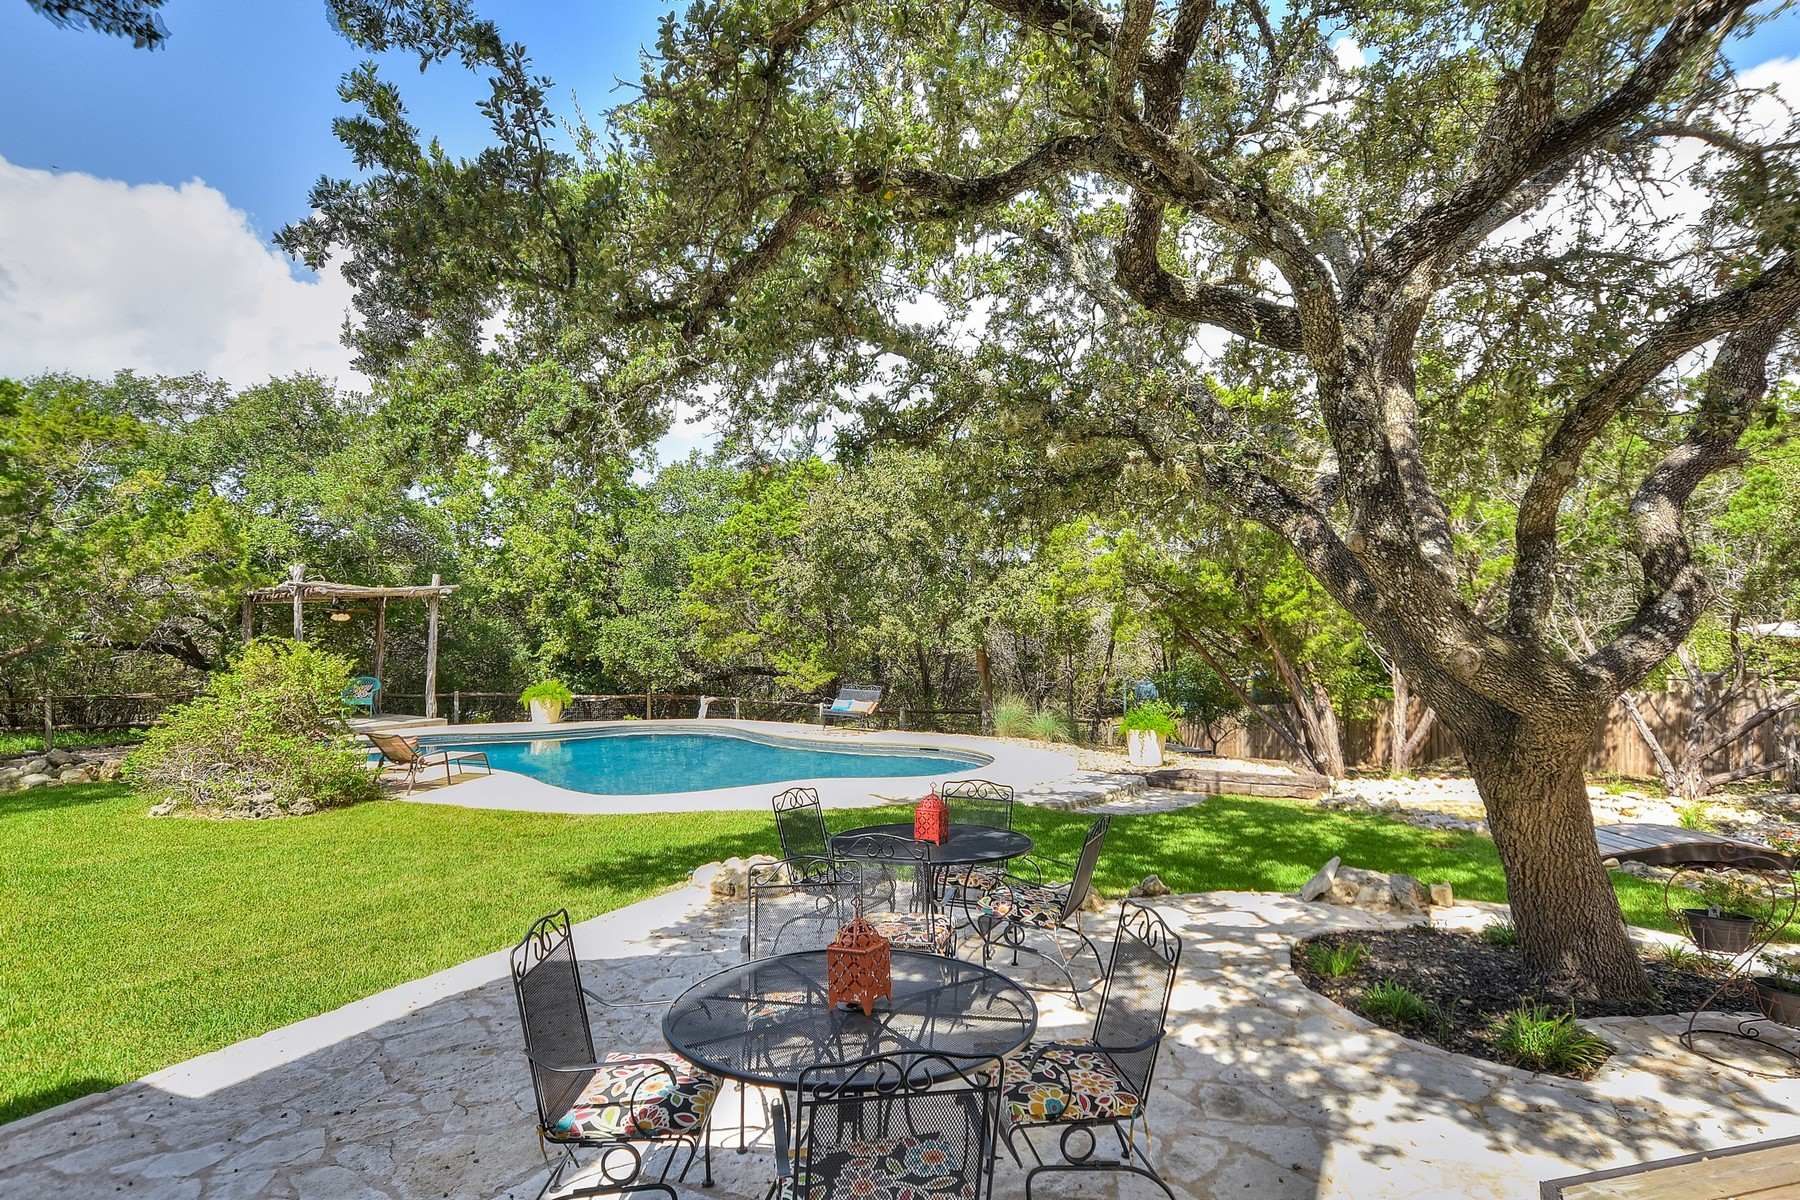 Additional photo for property listing at A Truly Texas Estate 109 Raley Rd Cedar Park, Texas 78613 Estados Unidos